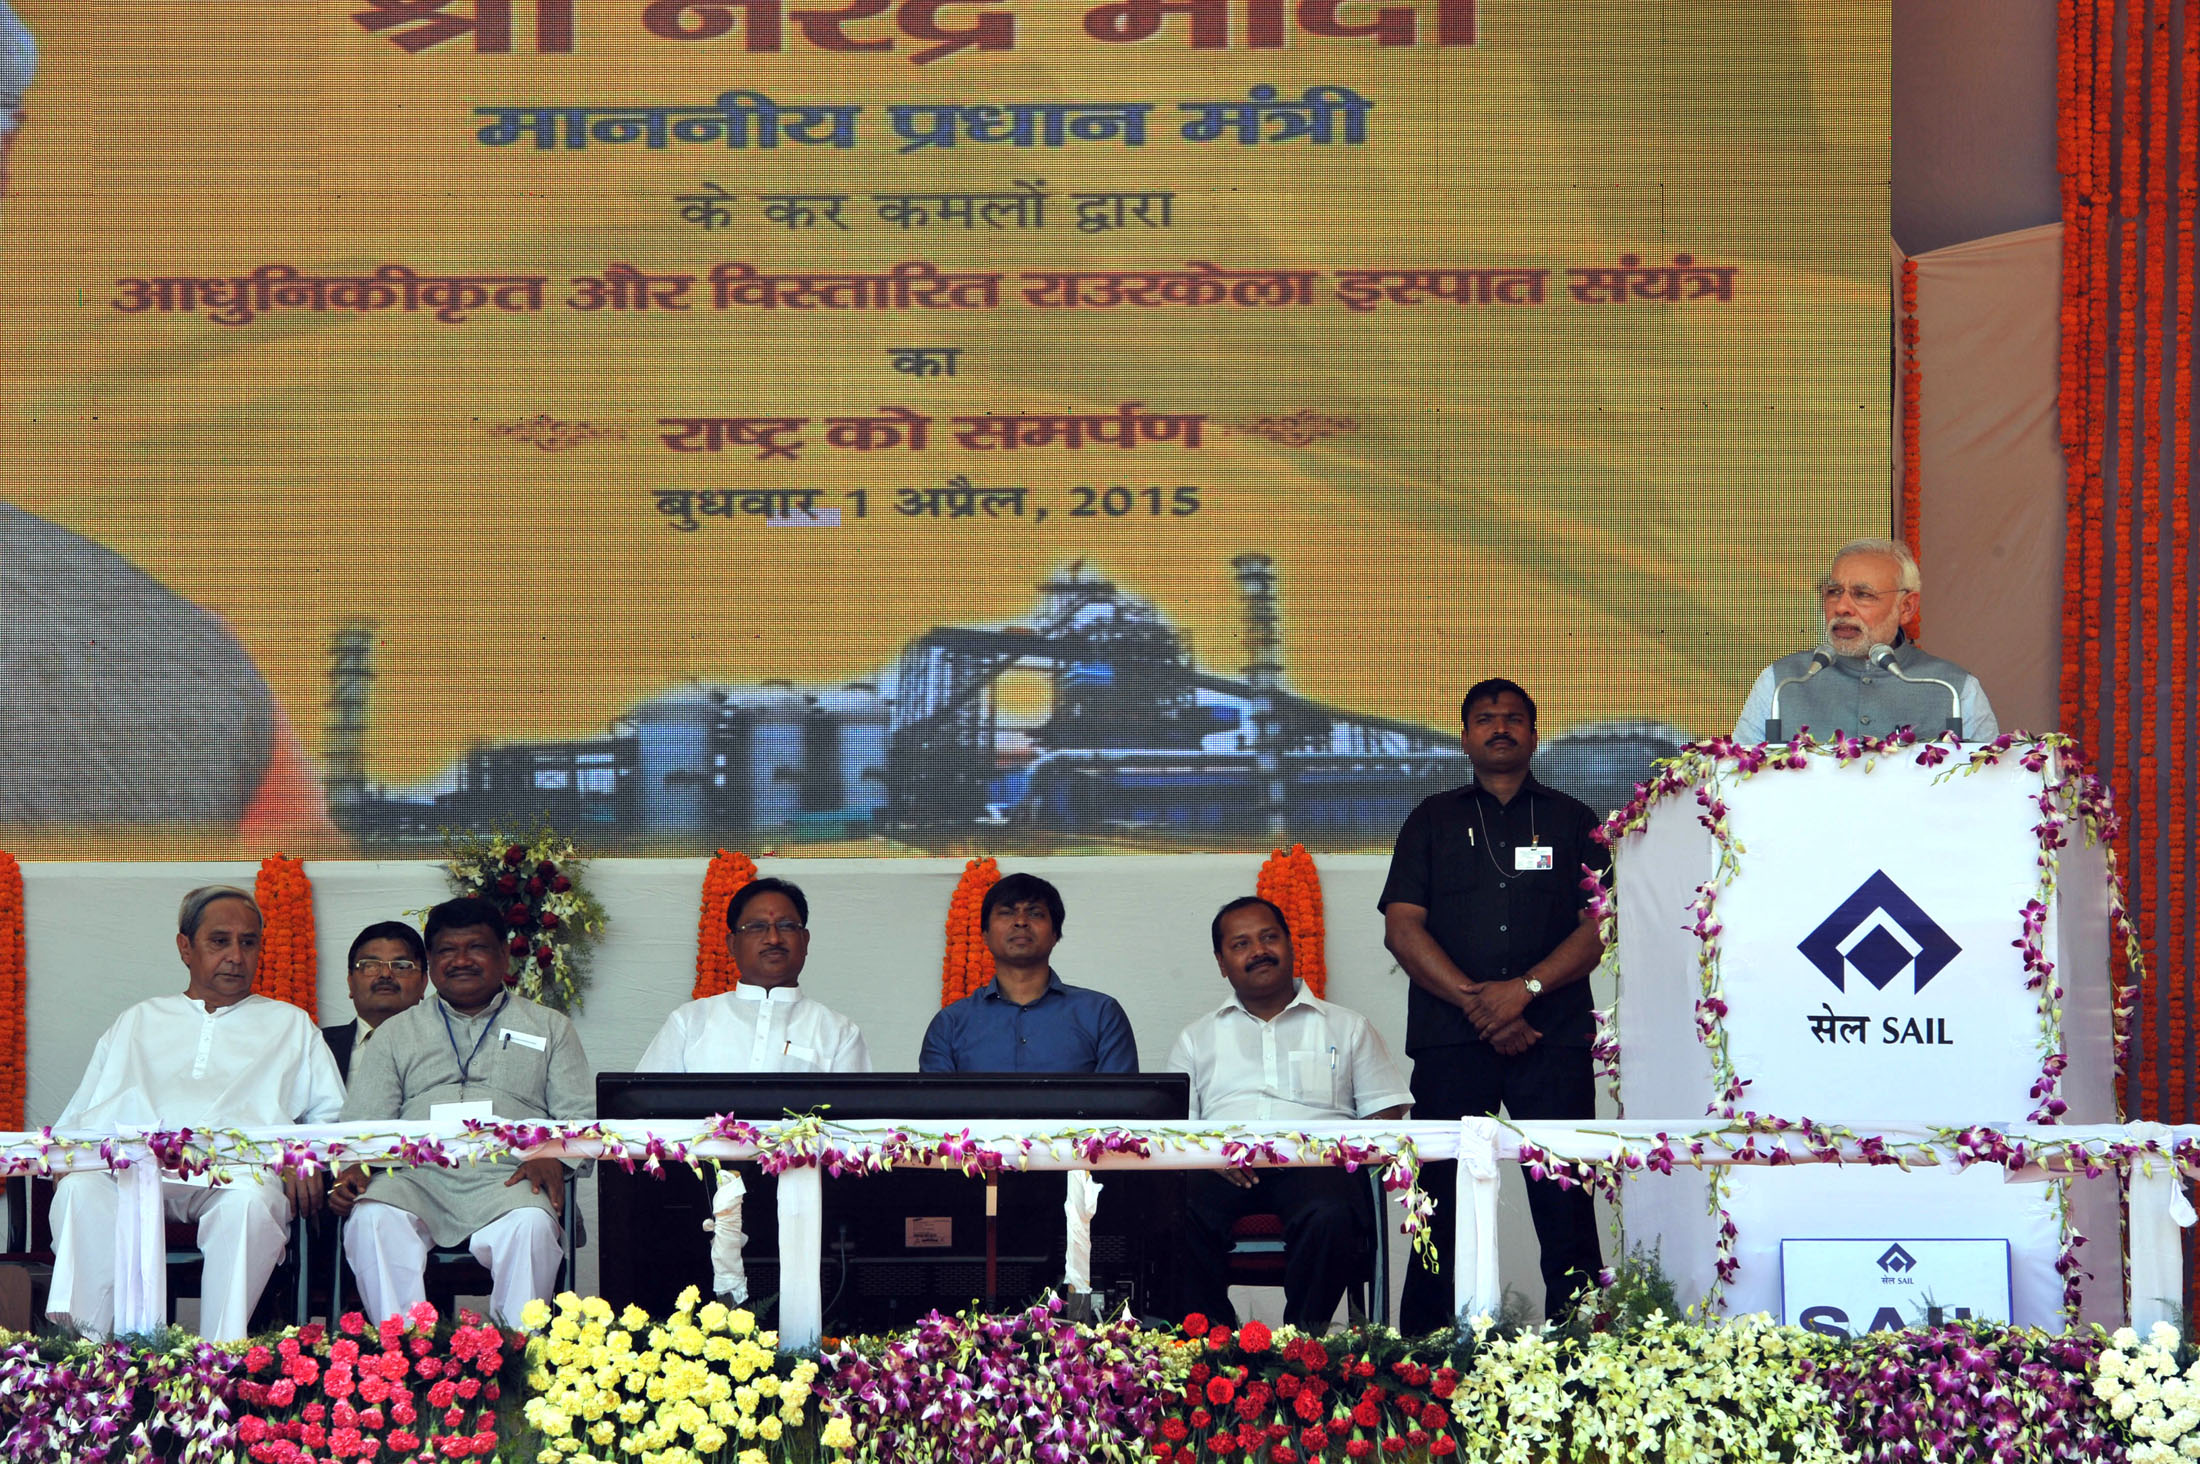 information news features and essays make in the prime minister shri narendra modi addressing at the dedication ceremony of the rourkela steel plant to the nation in odisha on 01 2015